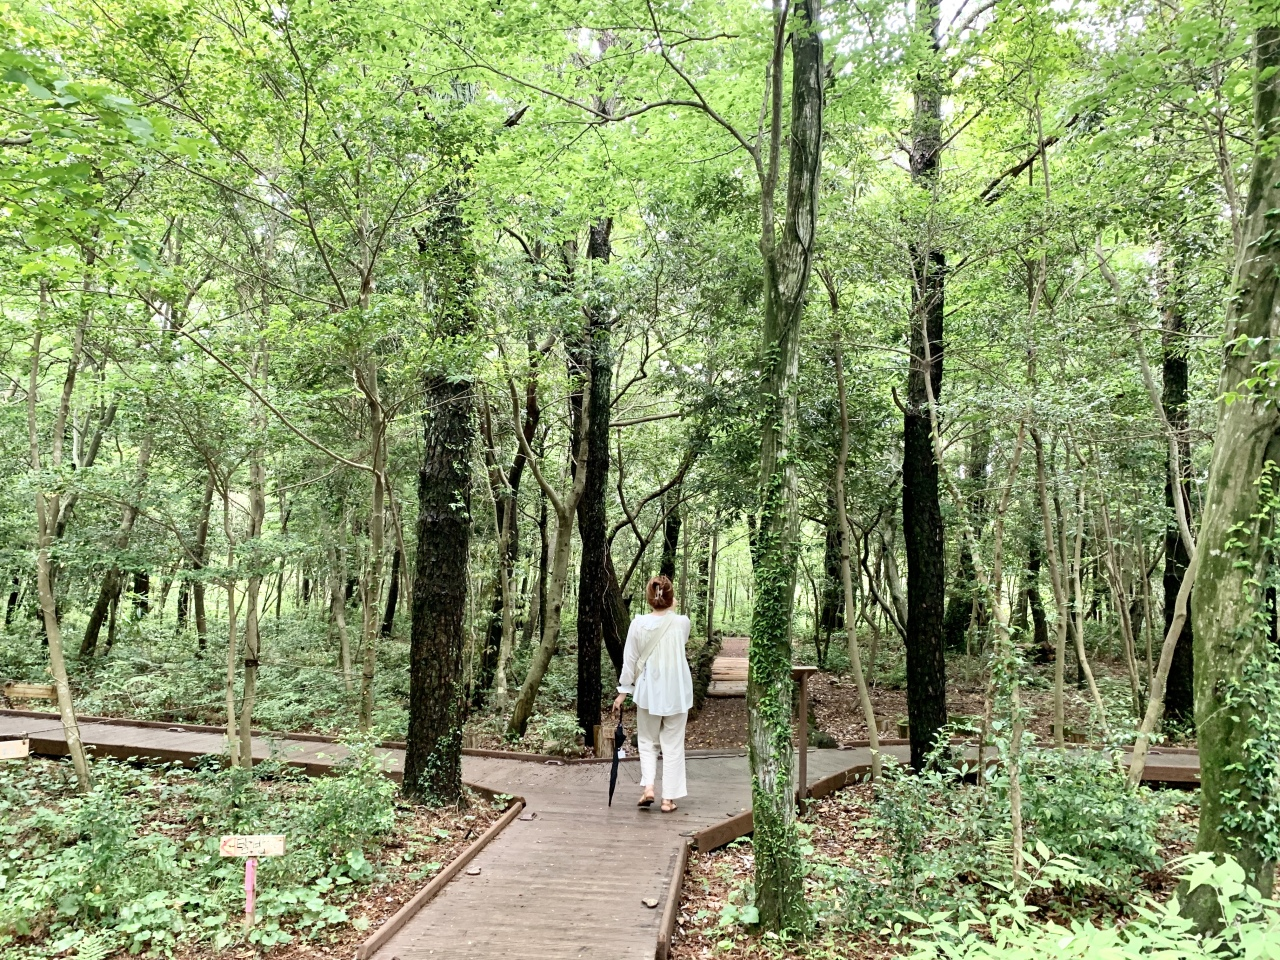 A tourist walks along a path in the Seogwipo Forest of Healing. (Im Eun-byel/The Korea Herald)